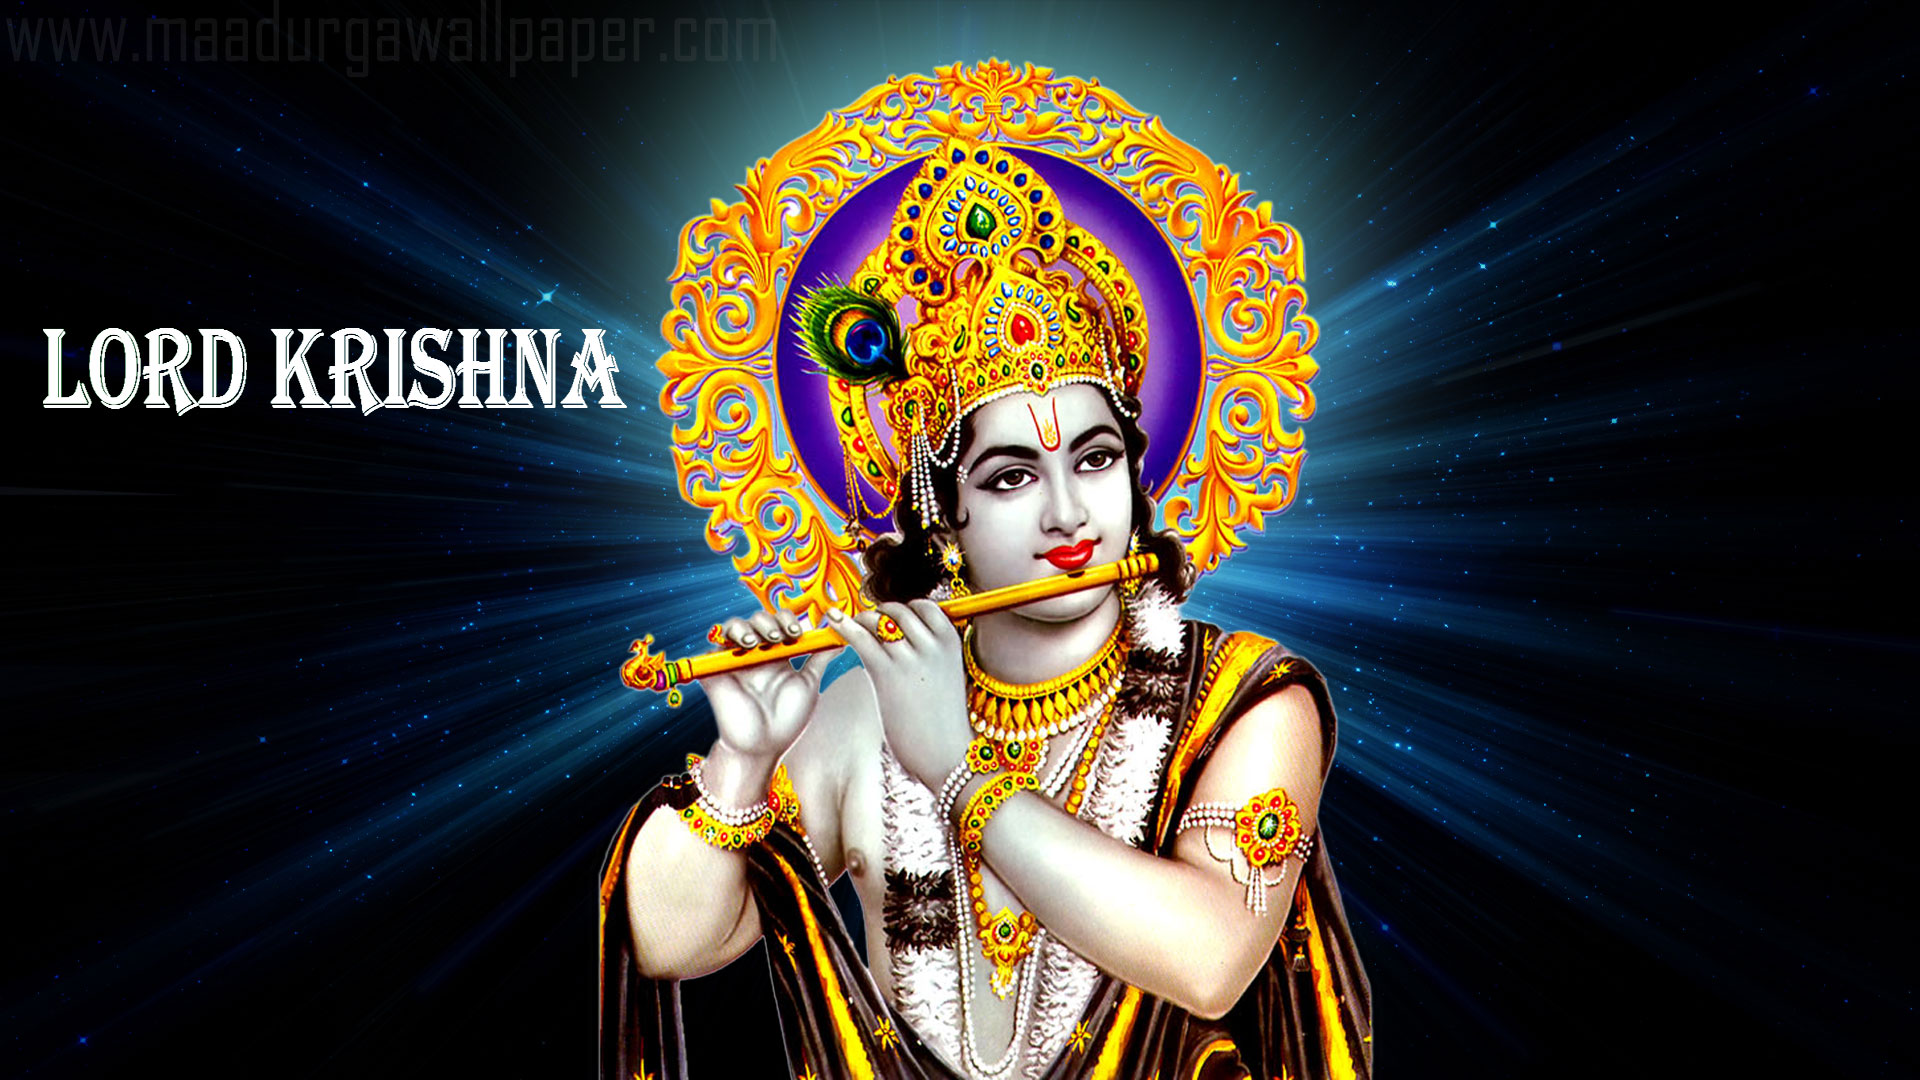 Krishna Wallpapers Hd Free Download | Hindu Gods and Goddesses